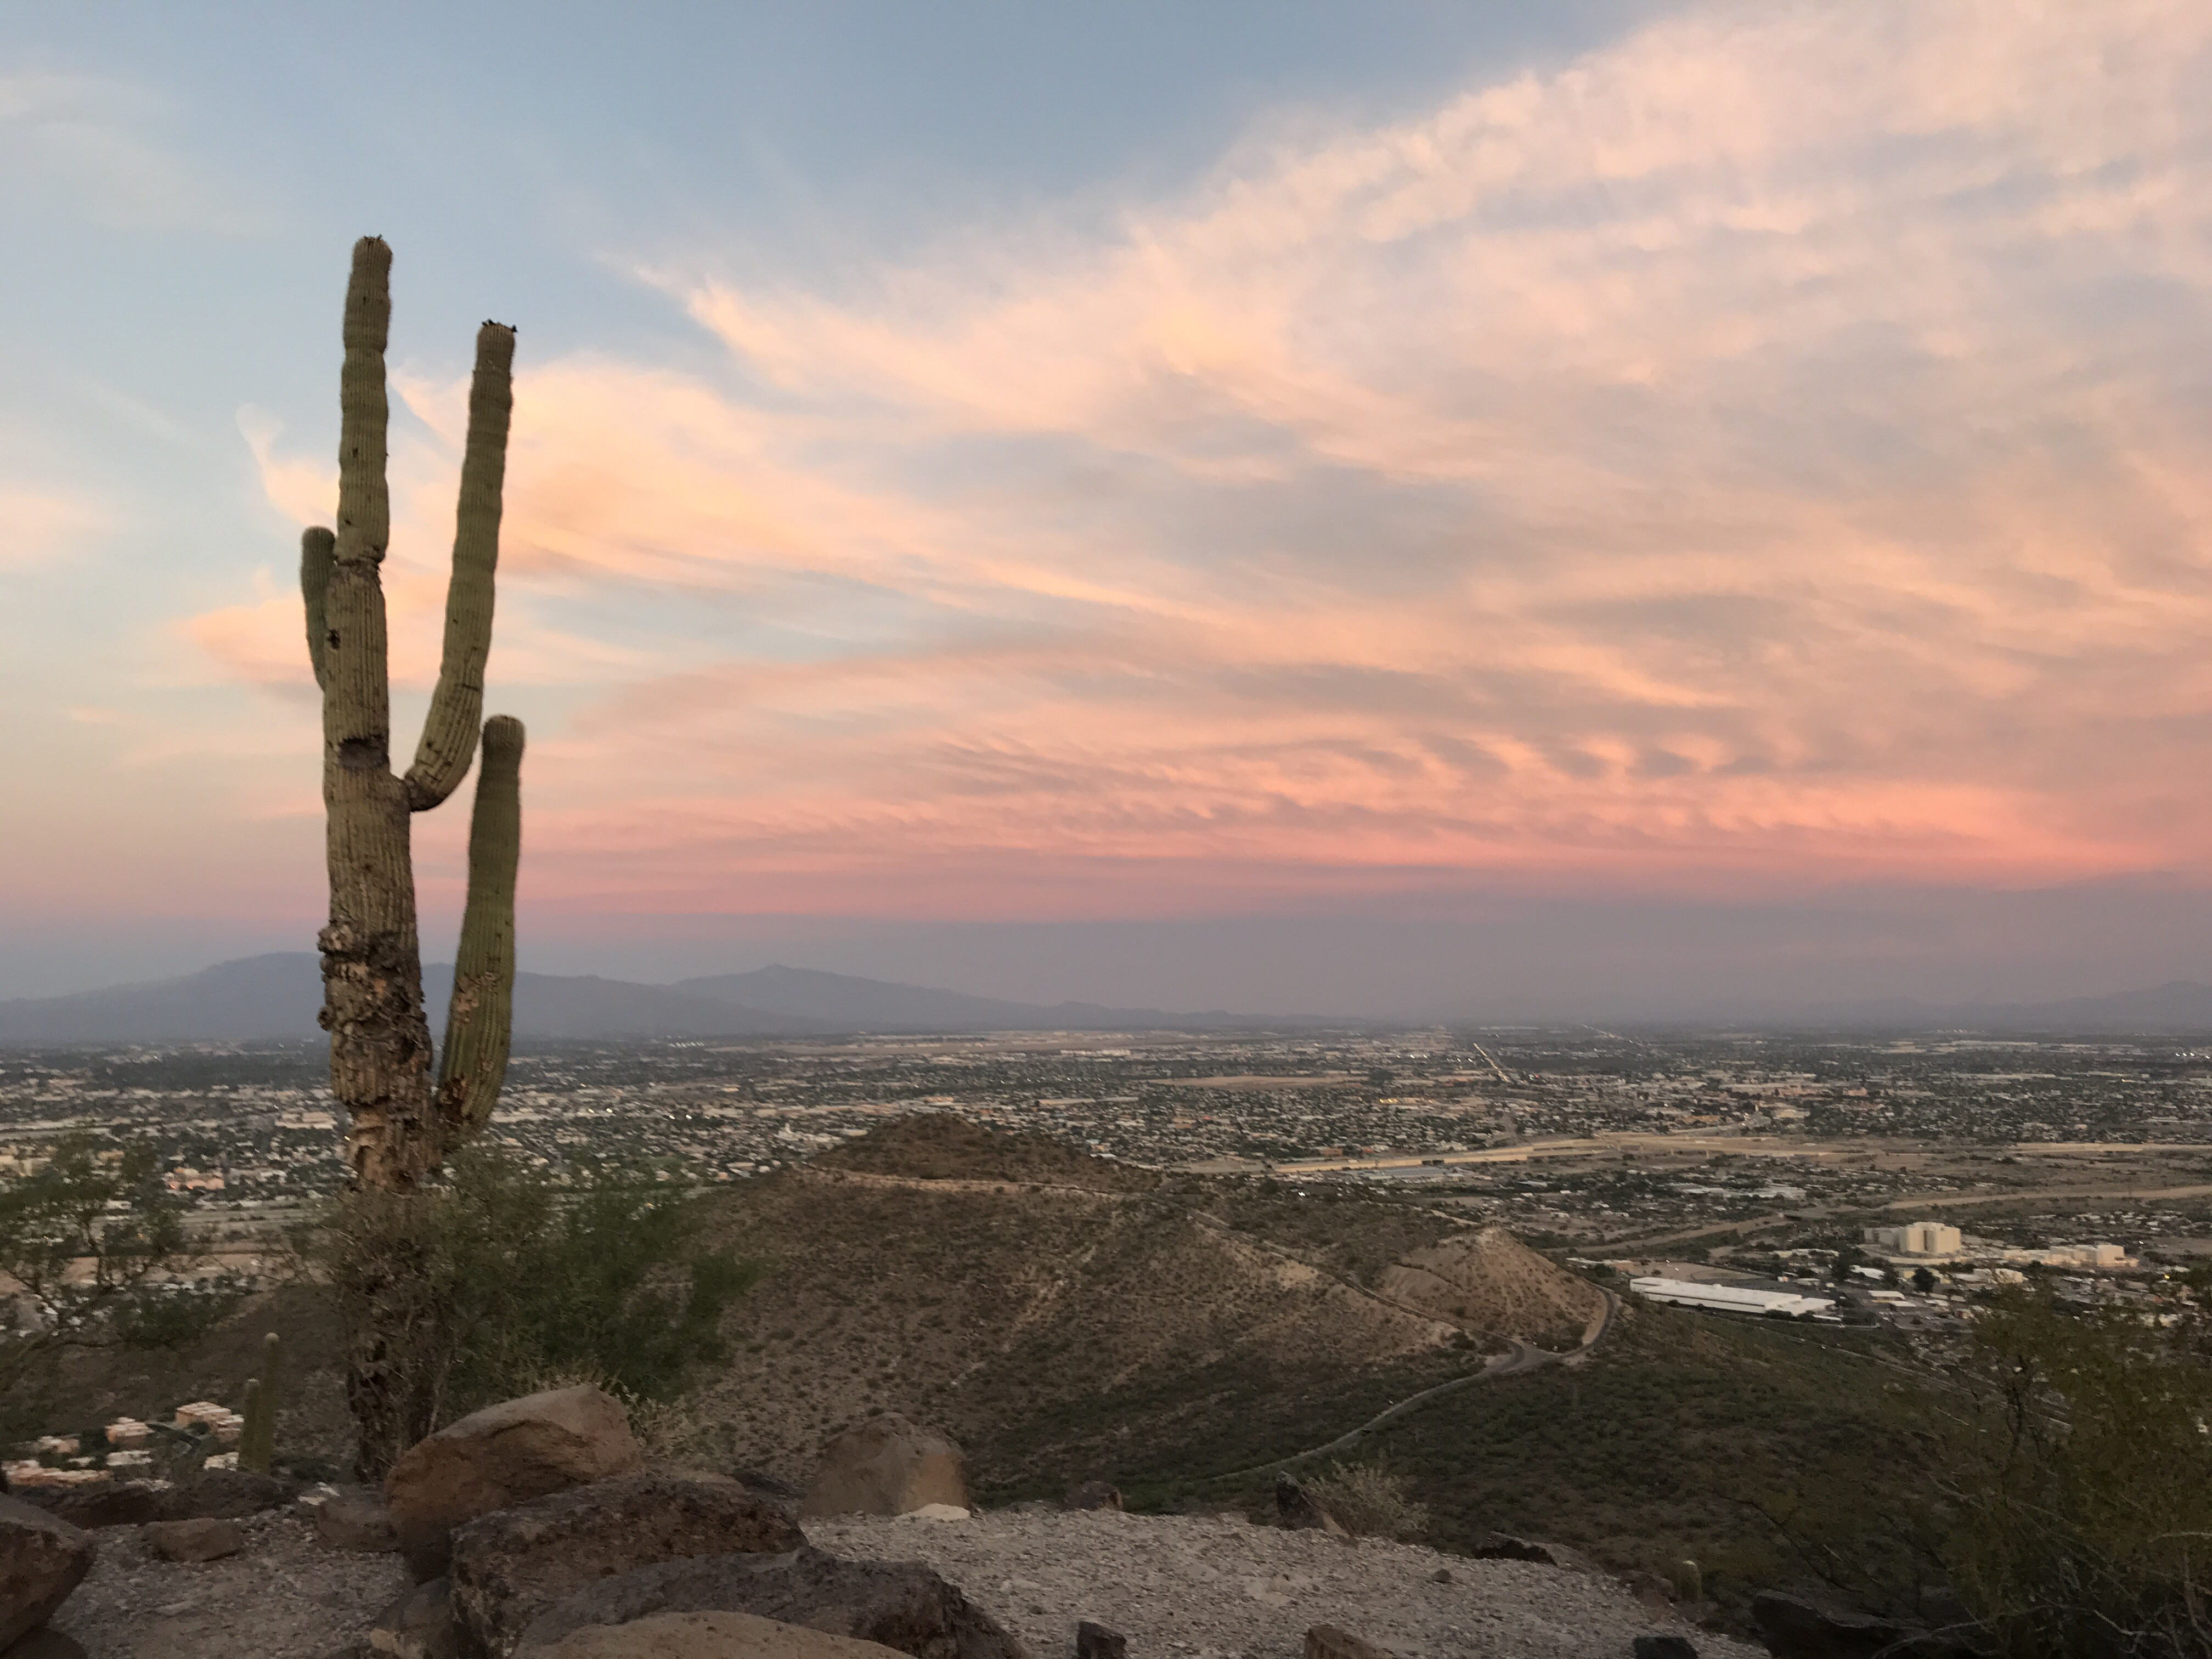 Sunset at the top of our hike at Tumamoc Hill in Tucson, Arizona